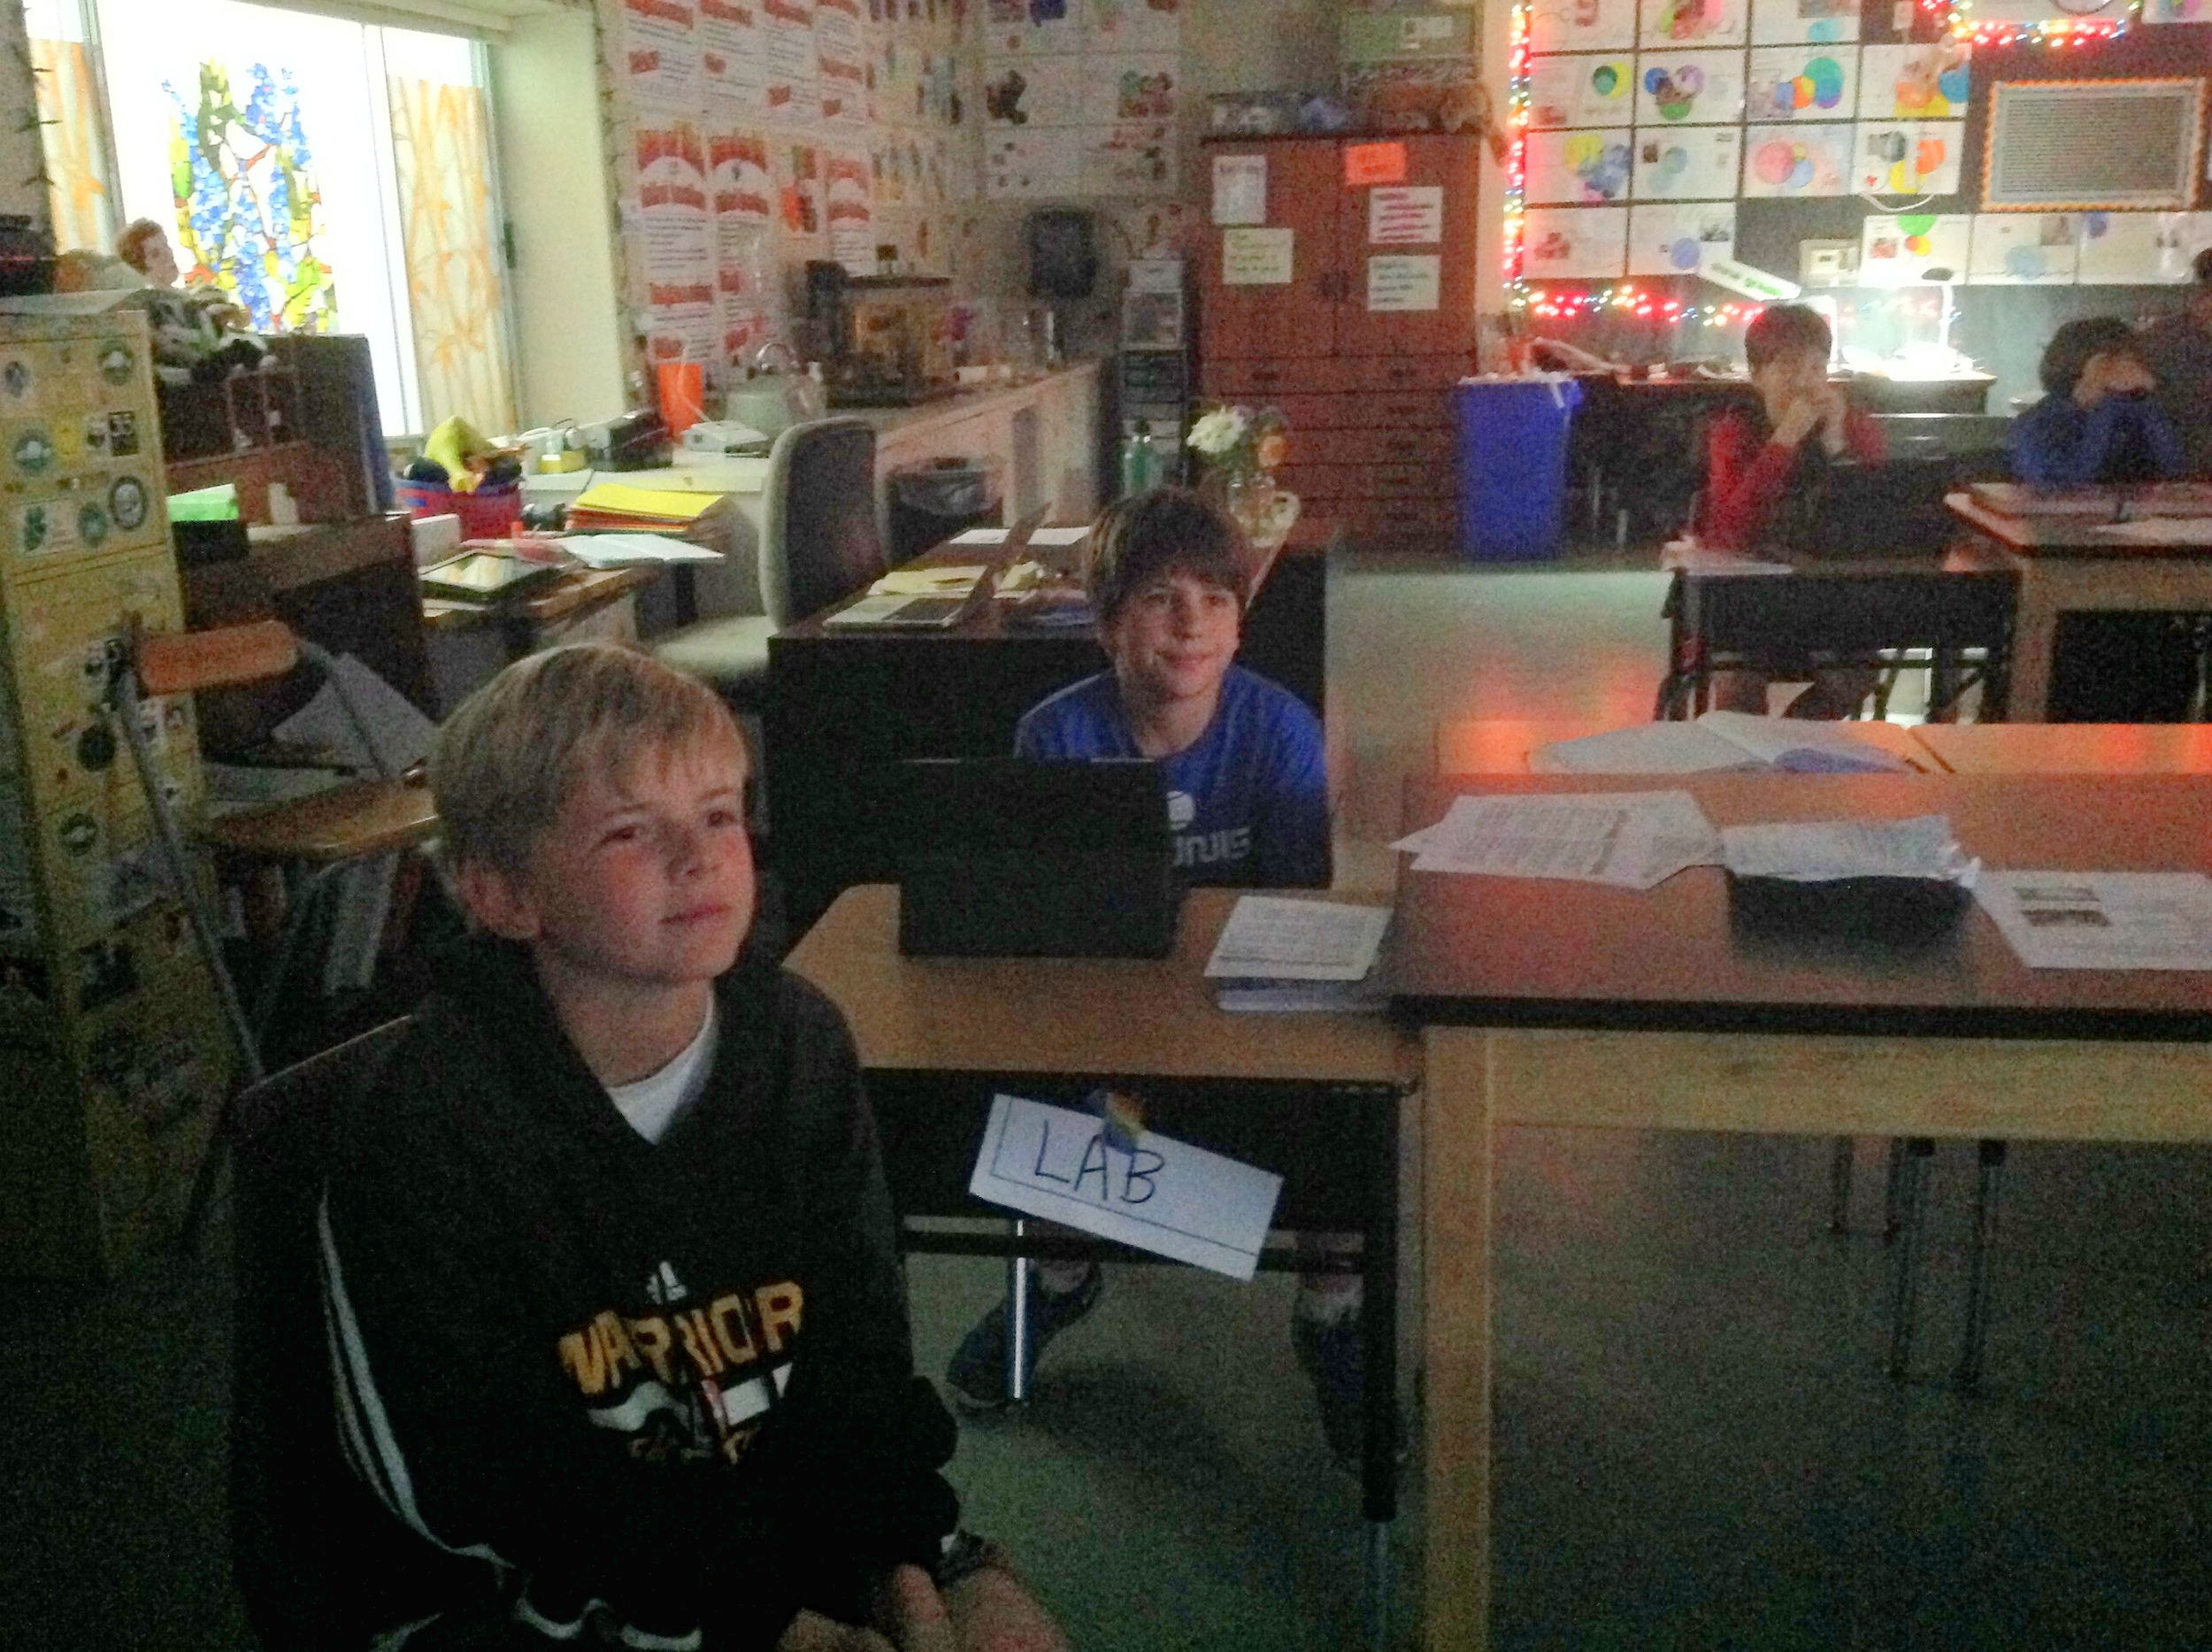 Sixth grade science students watching Worse Than Poop!